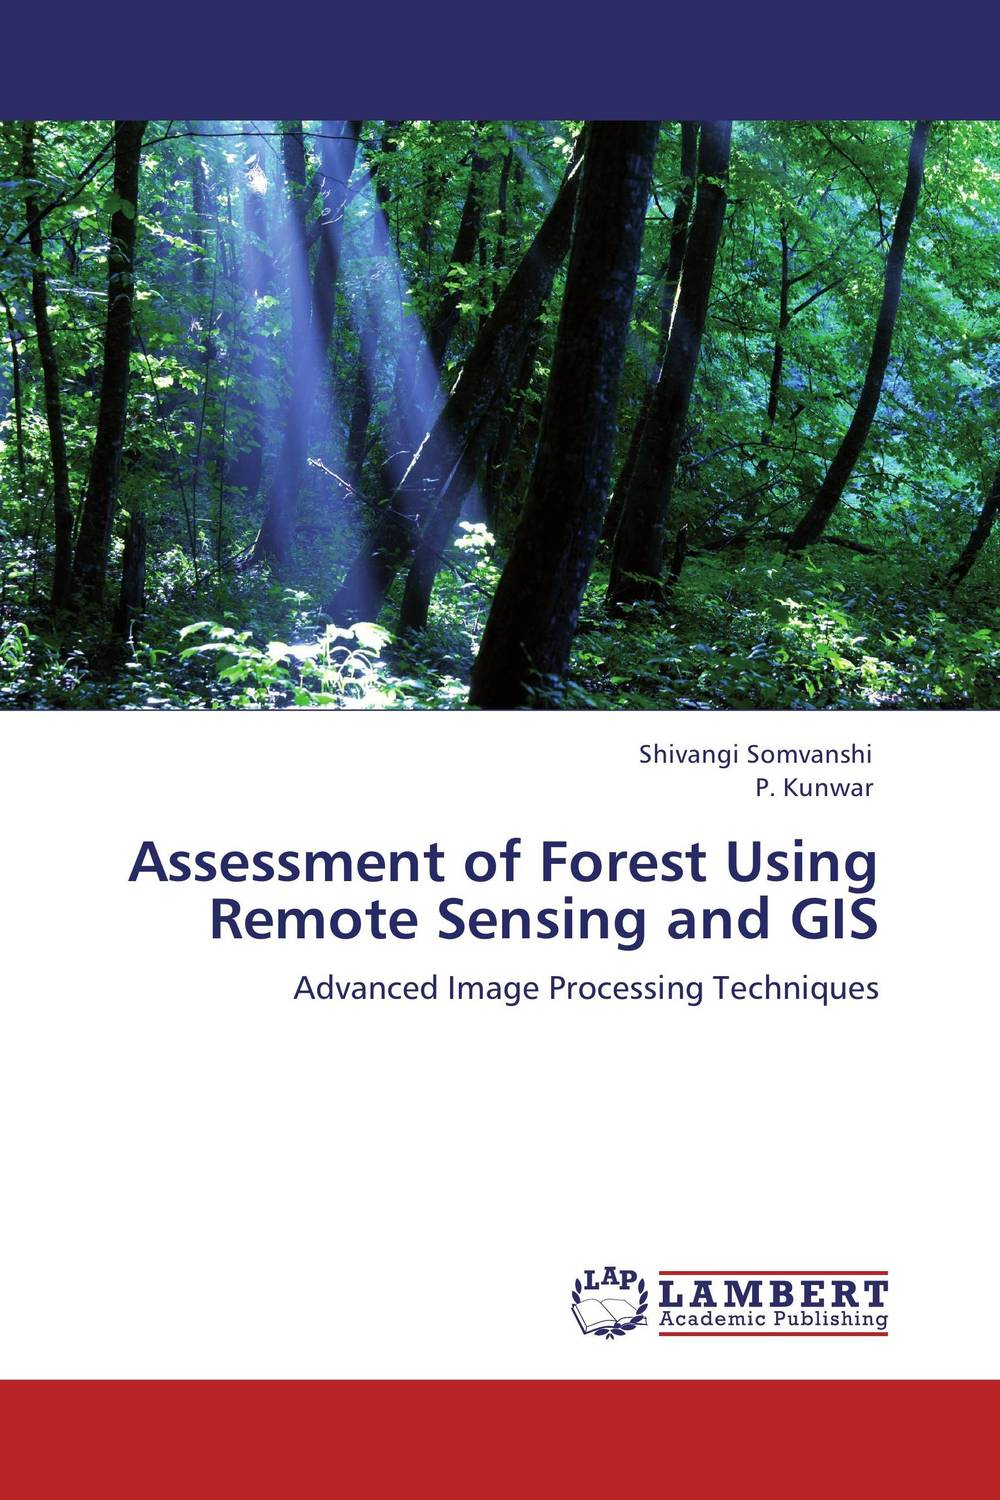 Assessment of Forest Using Remote Sensing and GIS